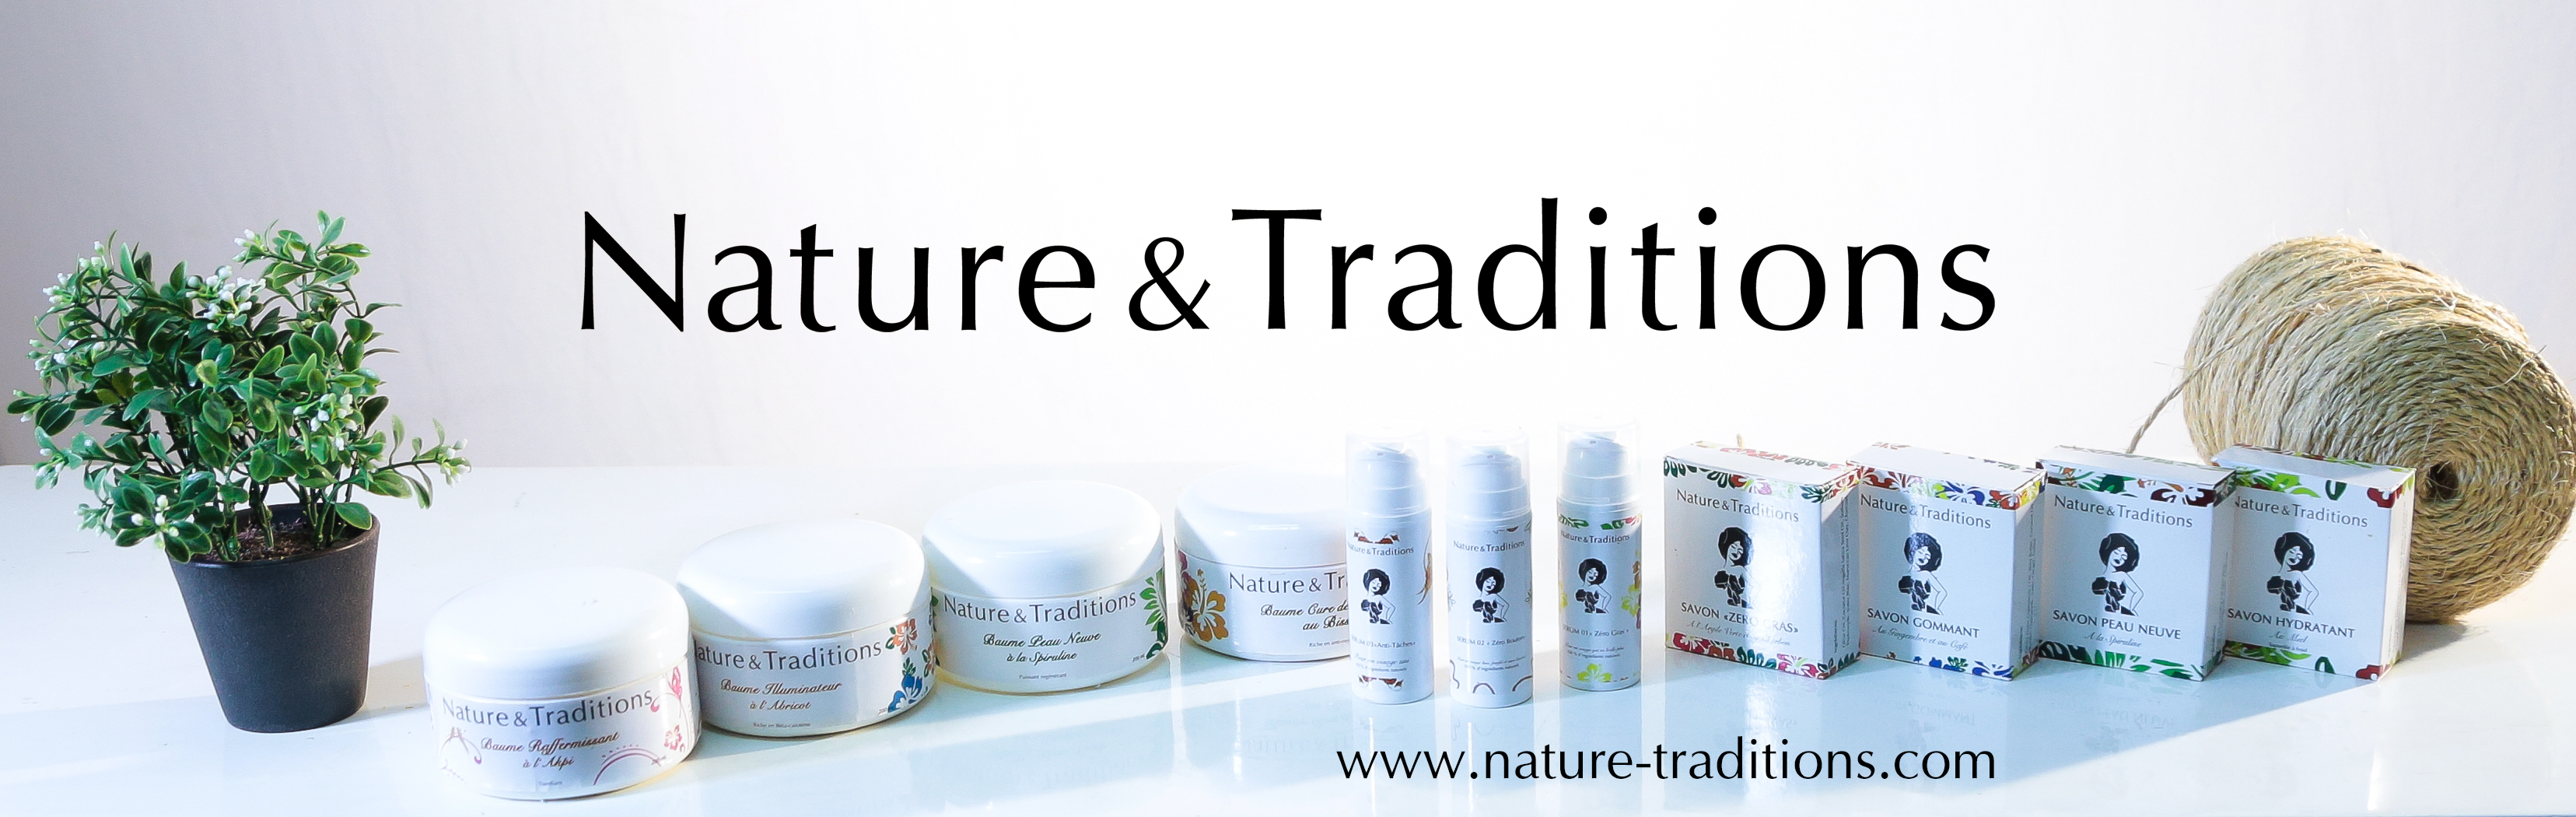 Nature & Traditions